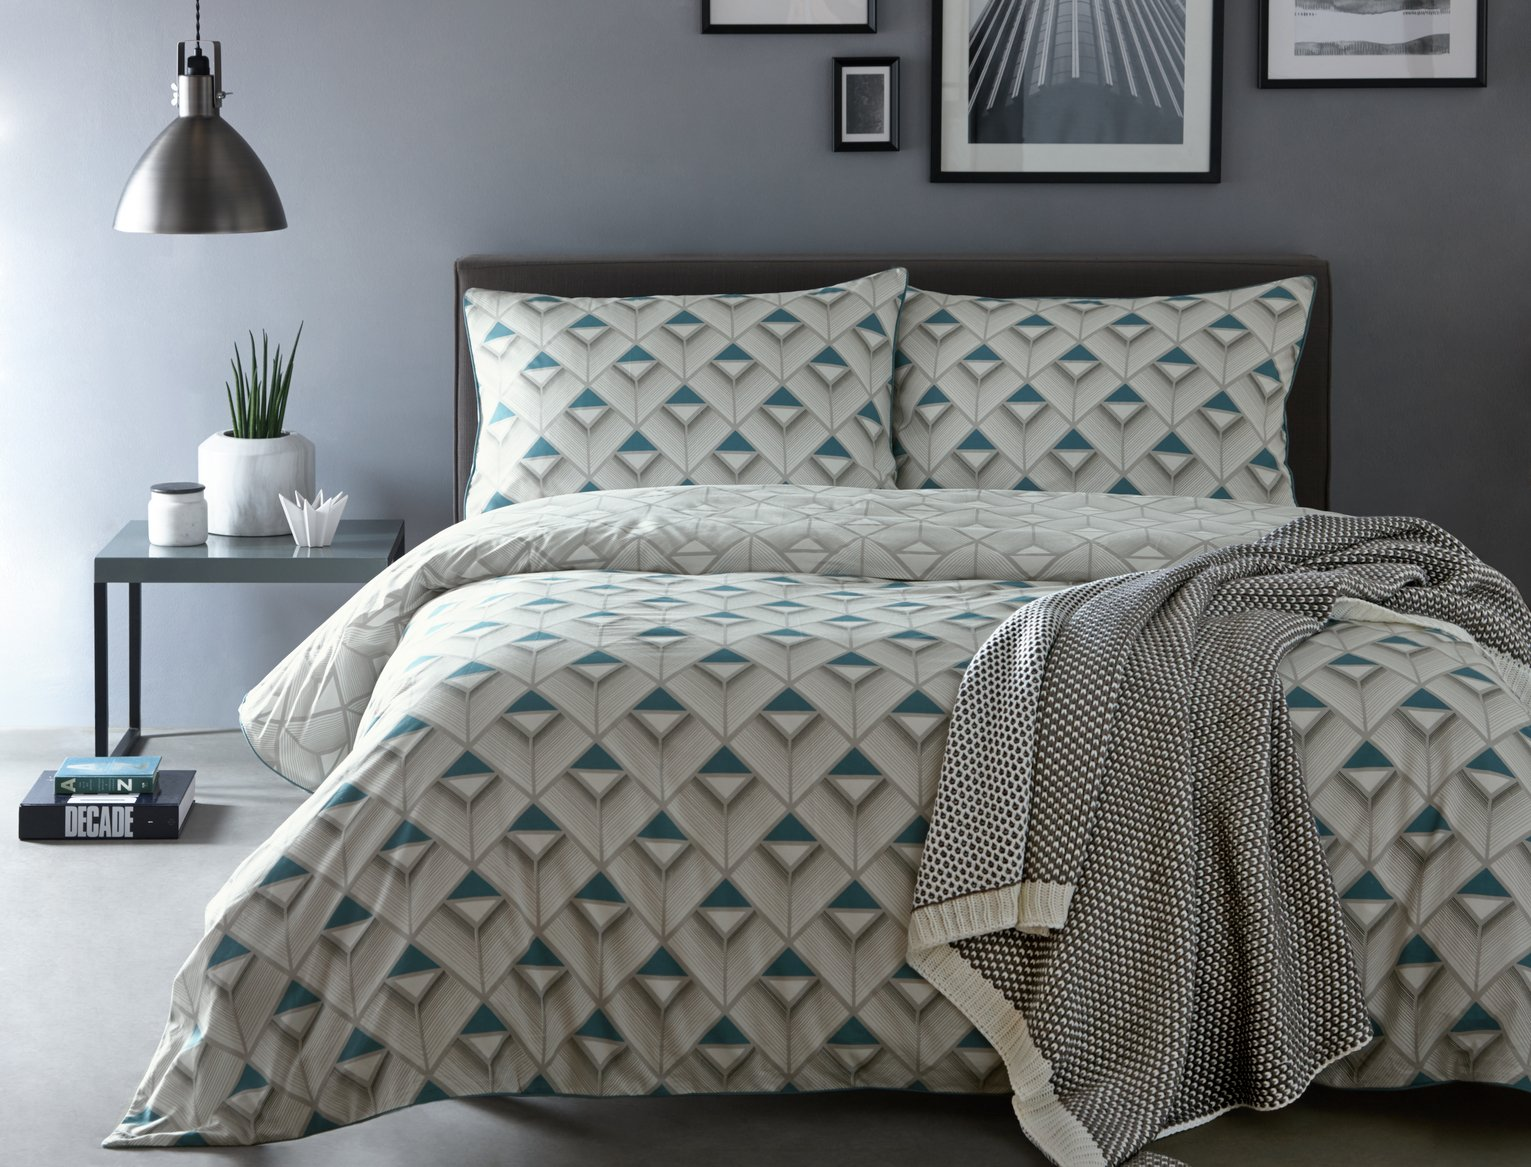 Image of Appletree Axis Blue Bedding Set - Superking